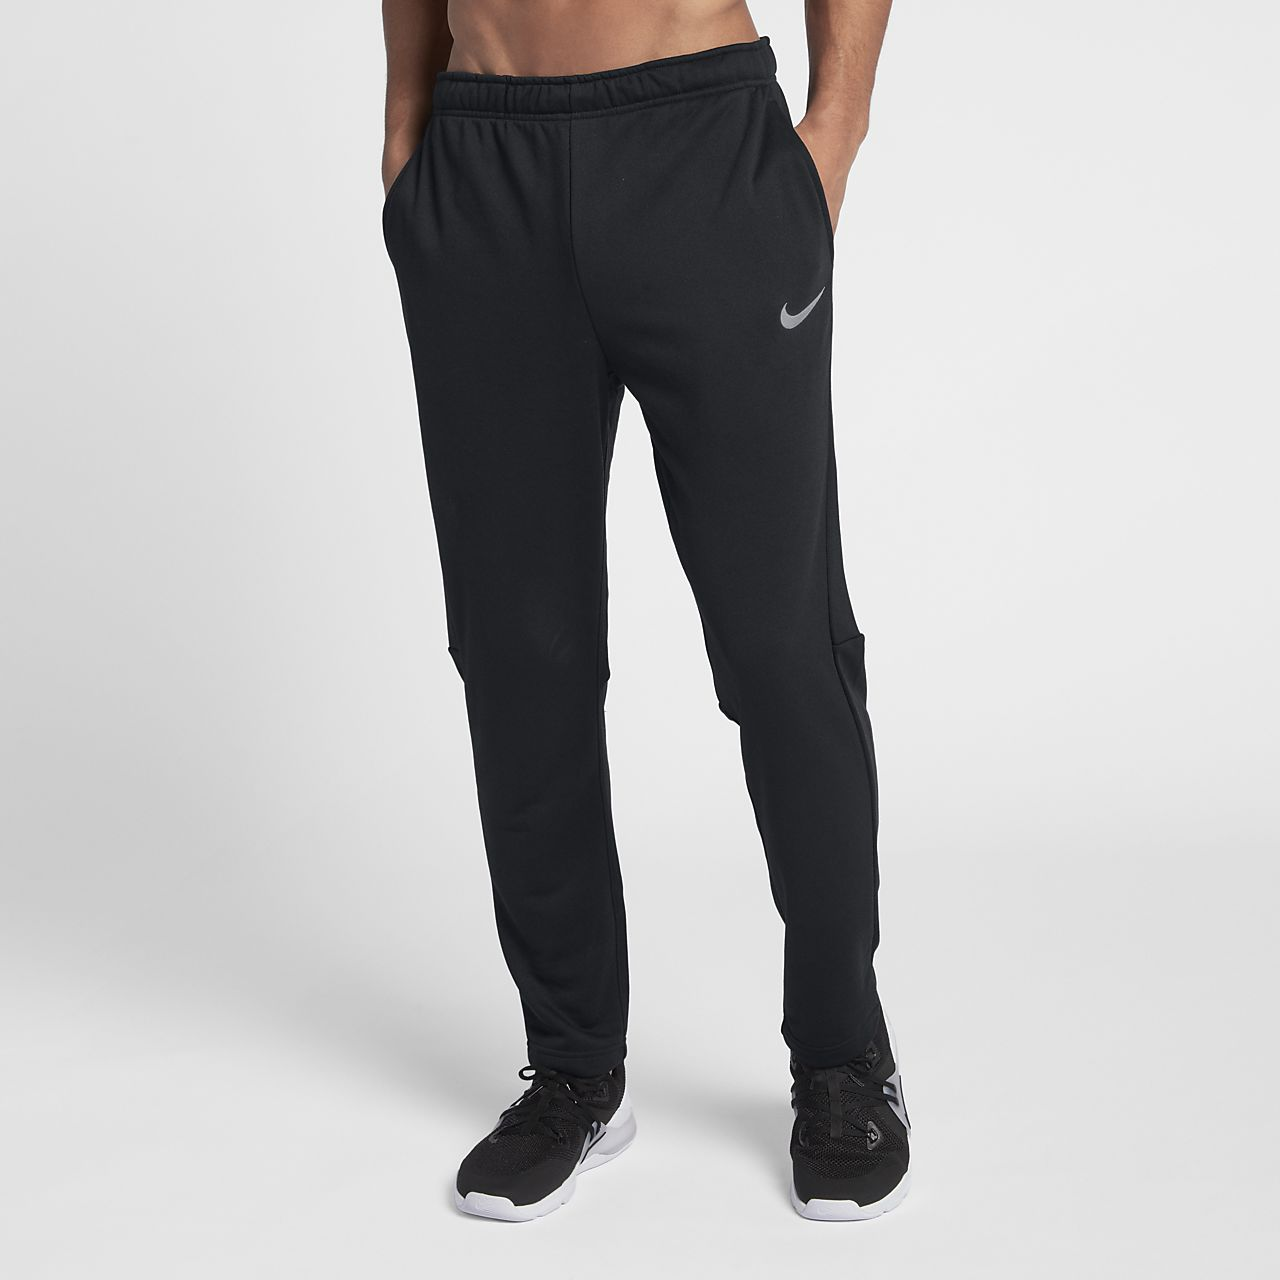 ff53efe81268 Nike Dri-FIT Men s Training Pants. Nike.com